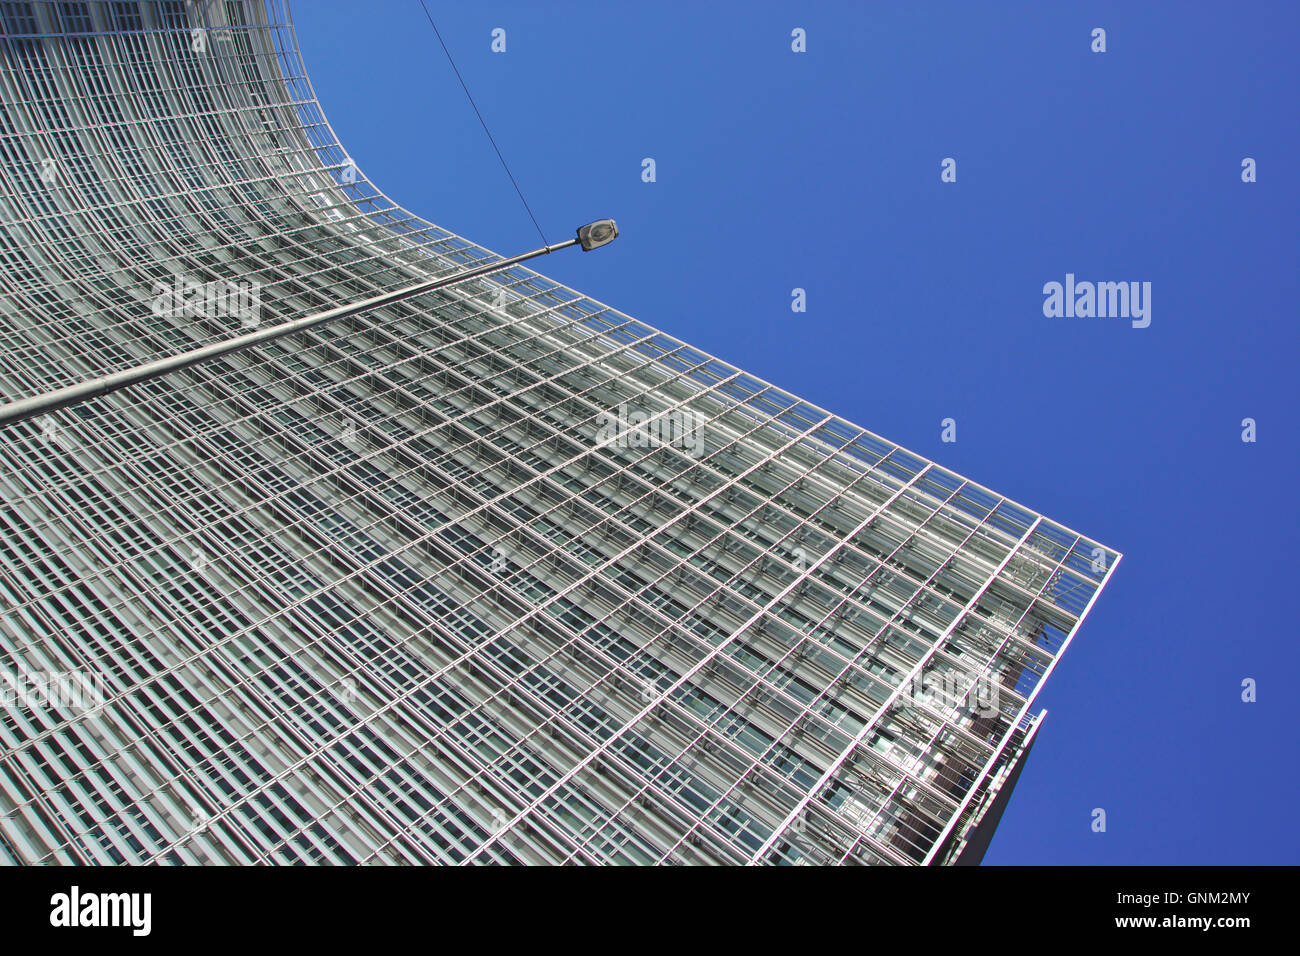 European Commission, Le Berlaymont building, Brussels, Belgium - Stock Image